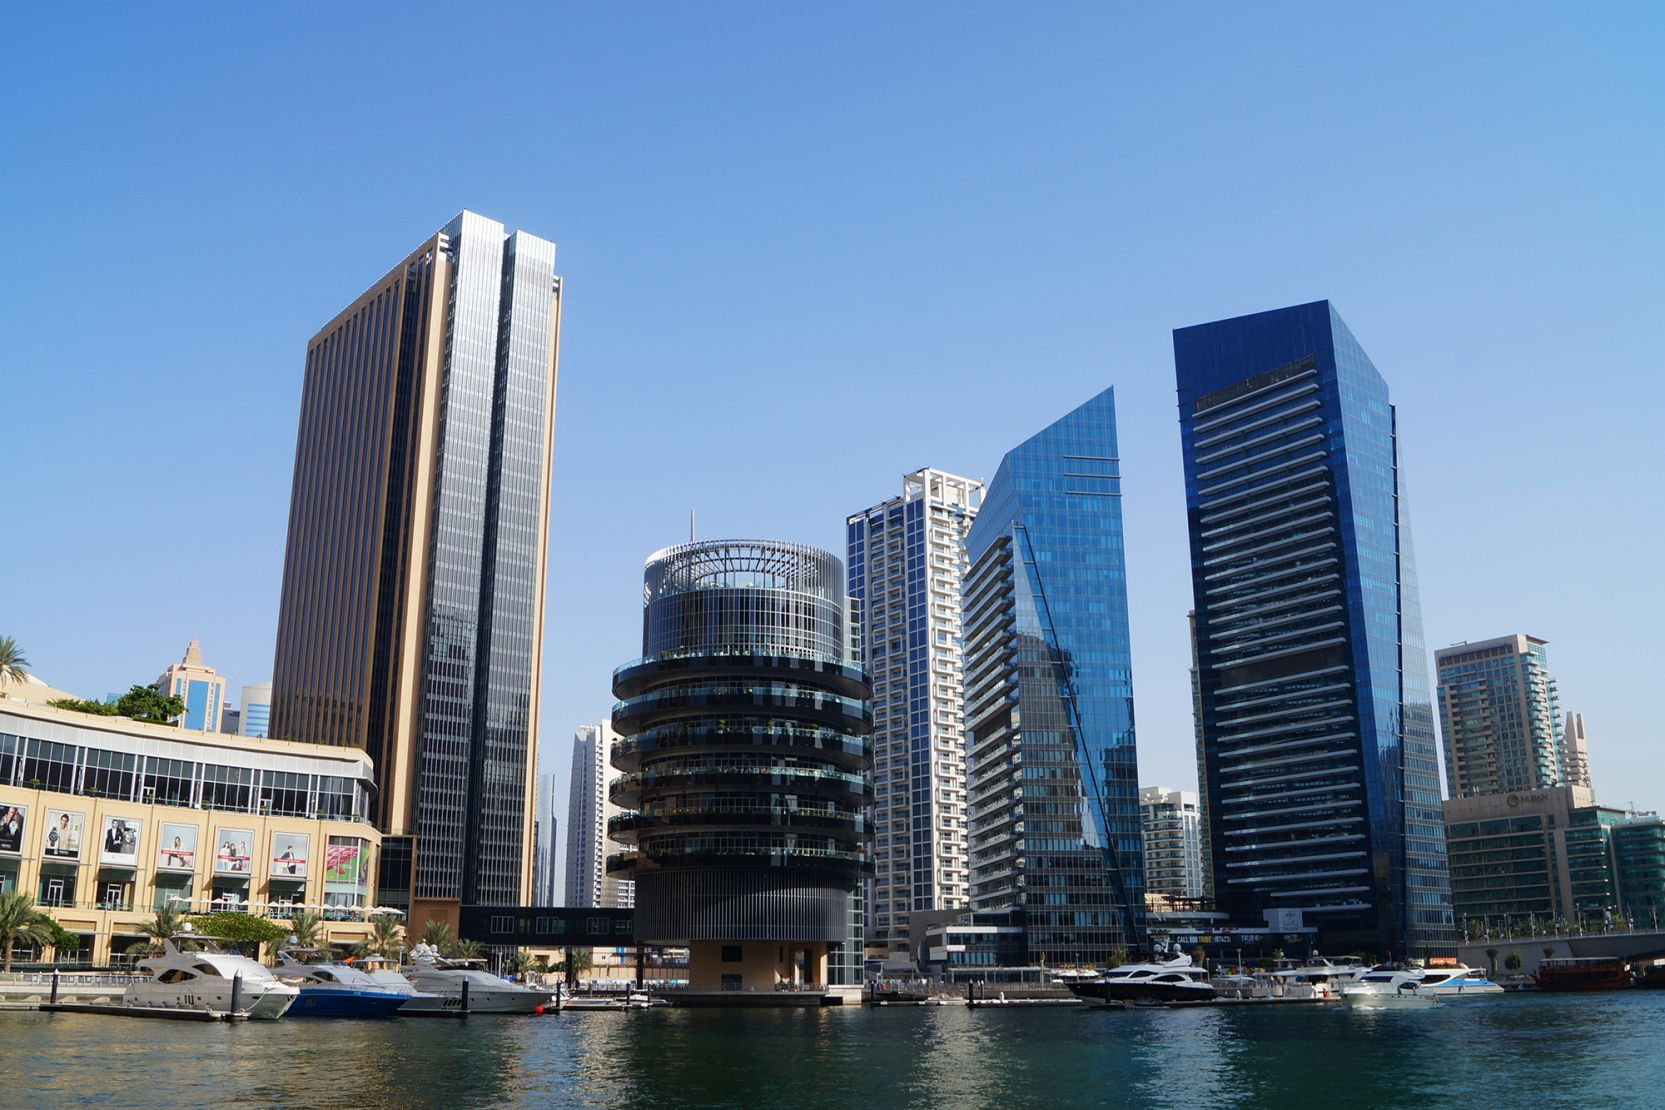 Dubai Marina Mall, The Address Hotel and Pier 7